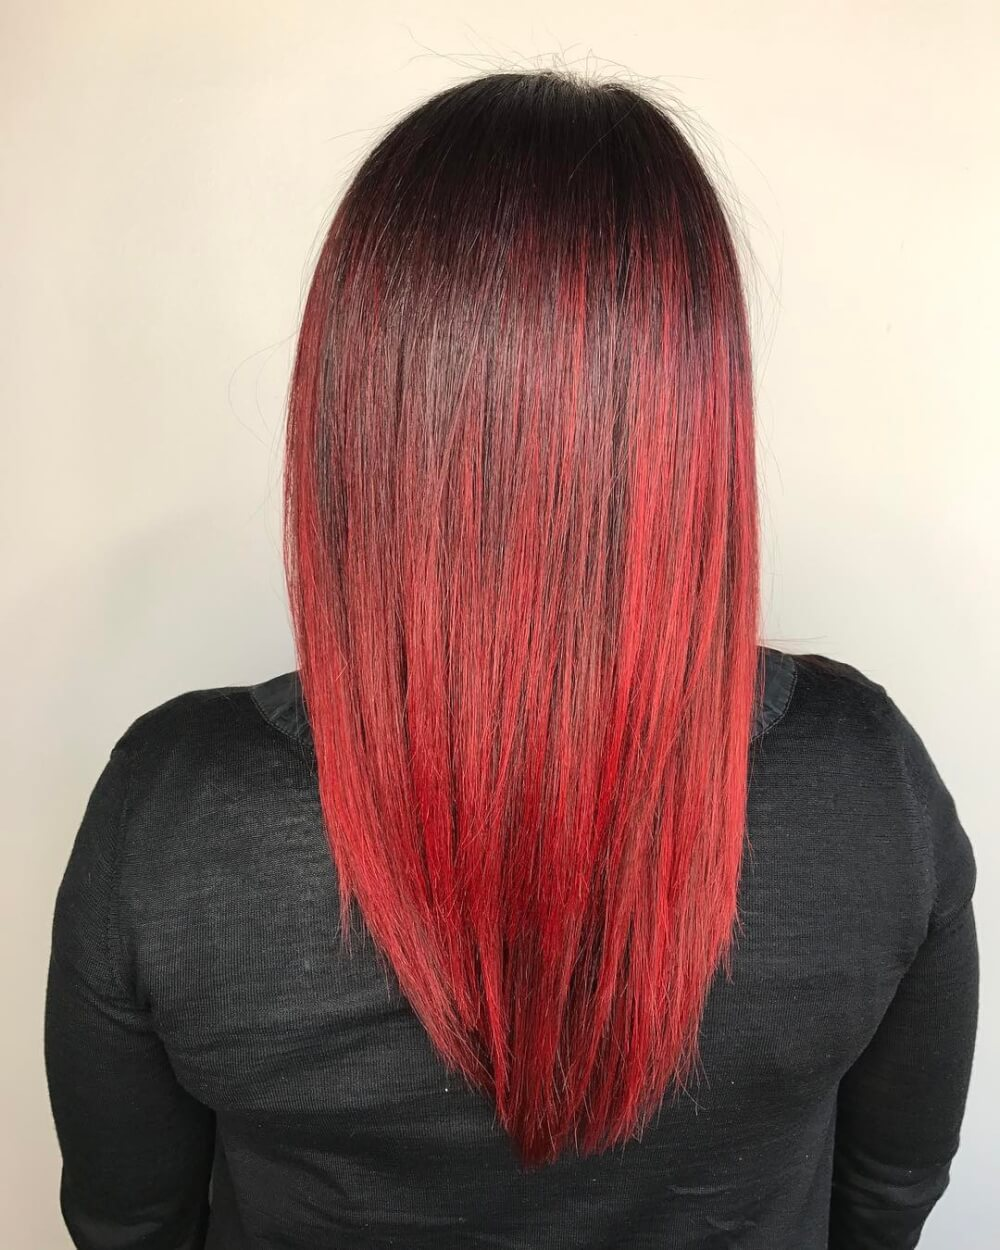 Medium layered haircut with a black to red ombre hair color